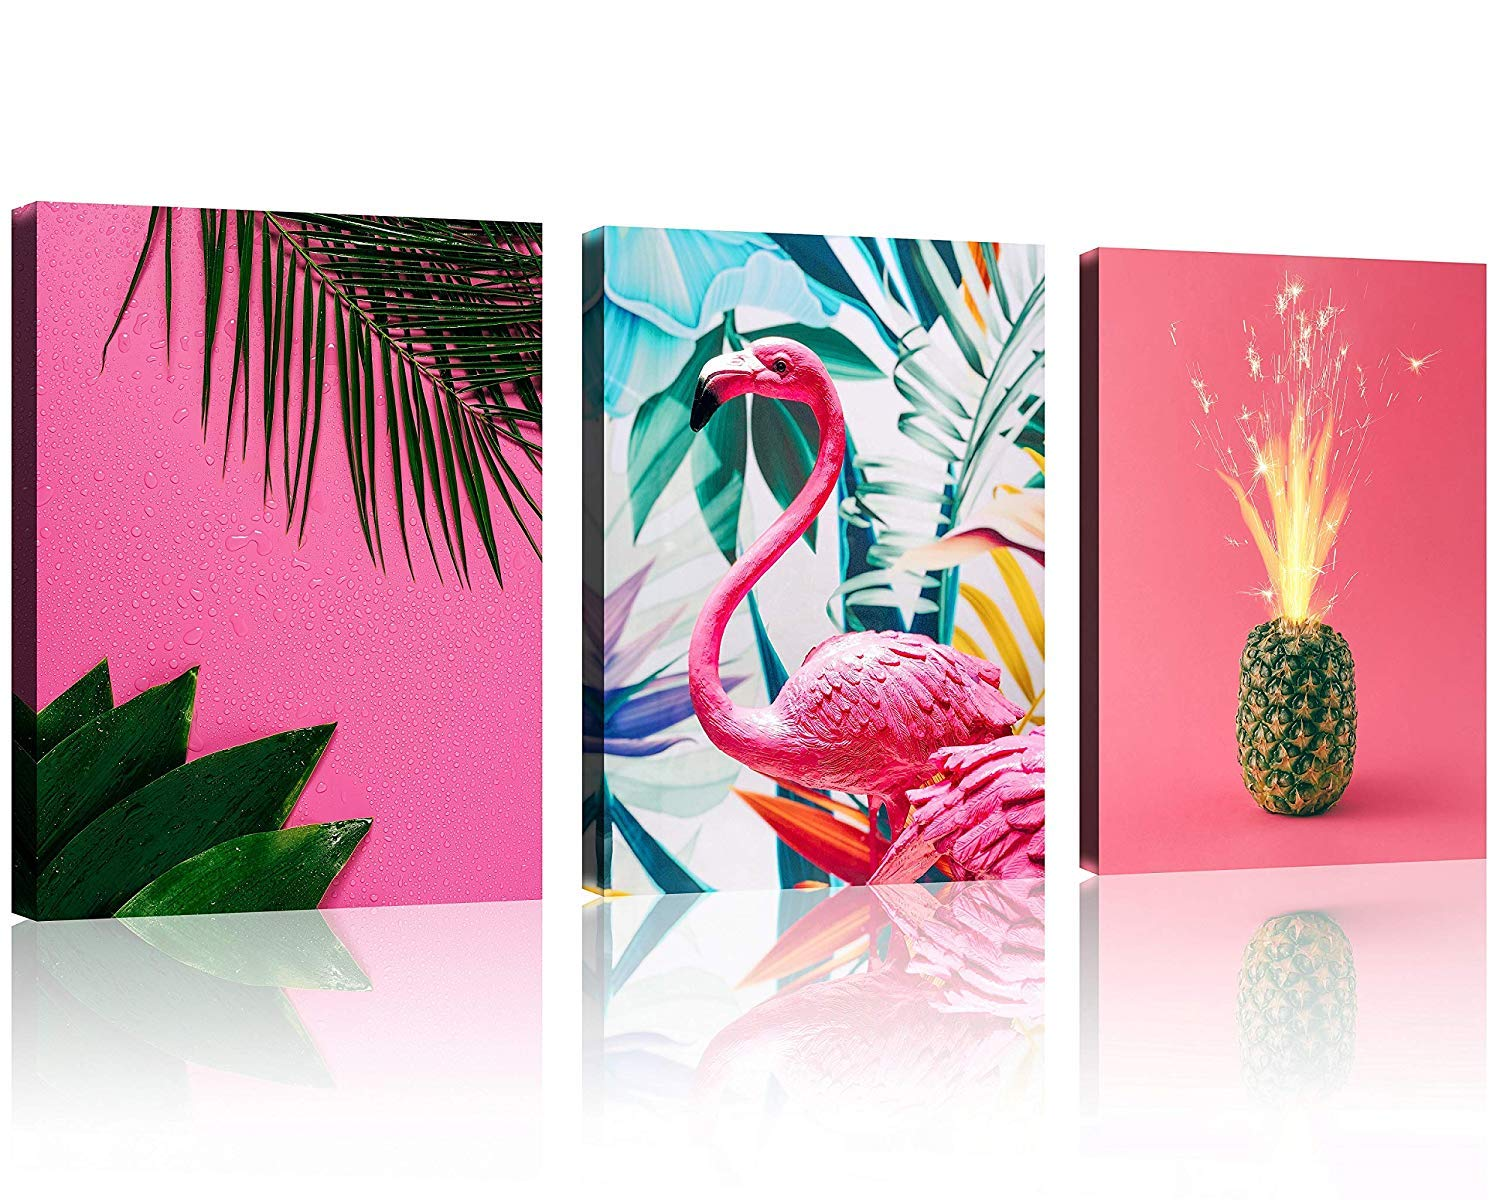 Tutubeer Plant Wall Art Pink Flamingo Decor Pineapple At Pink Background Tropical Wall Decor Plant Art 12 X 16 X 3 Pieces Canvas Pictures Prints